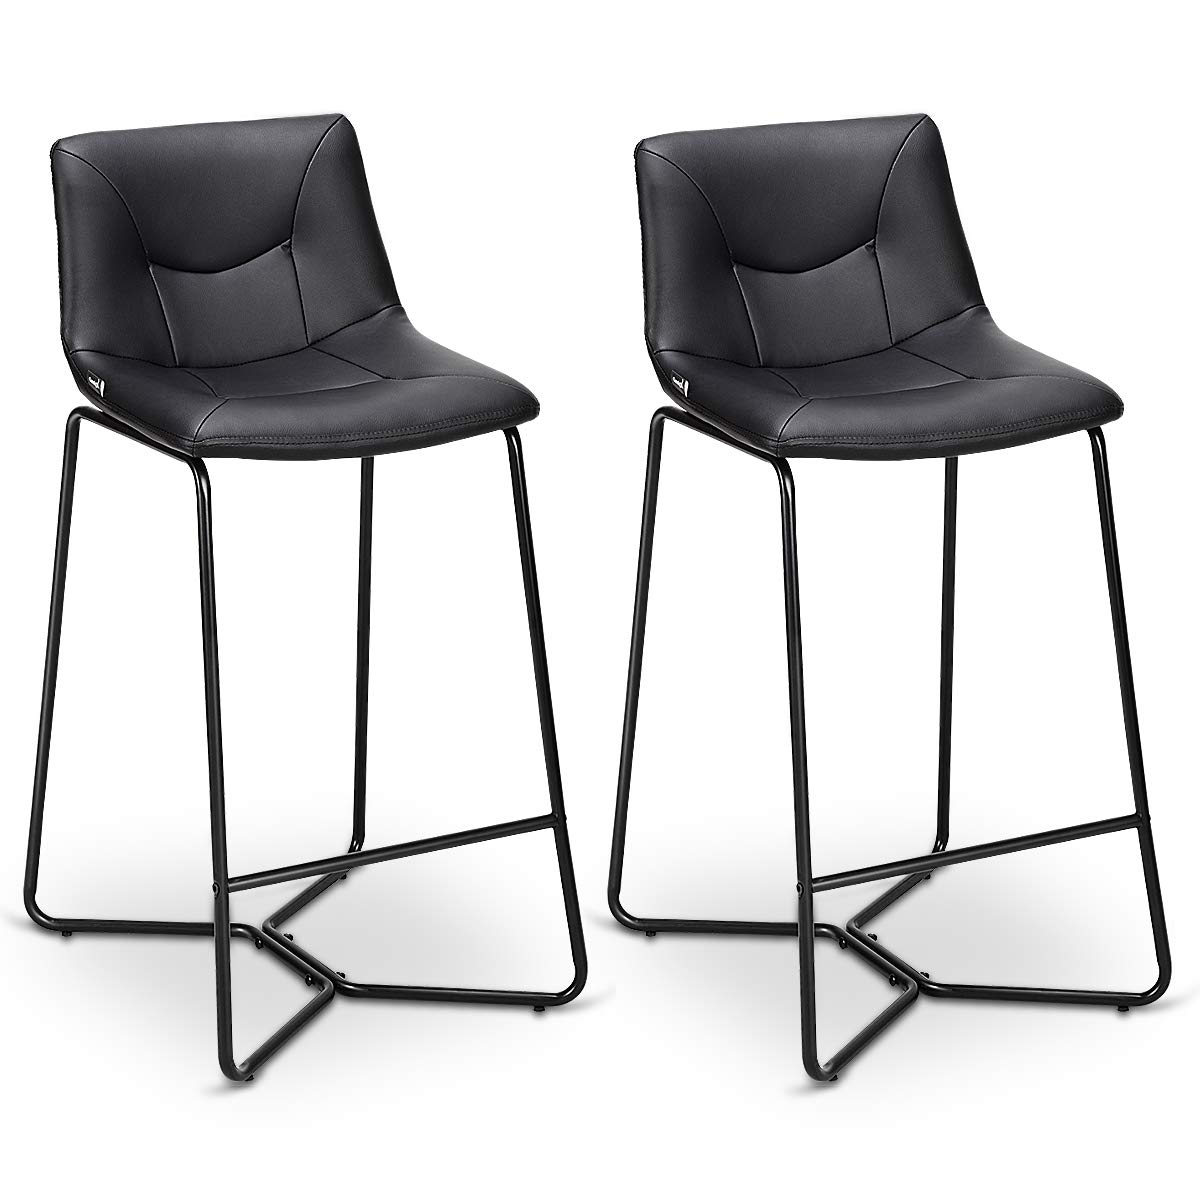 COSTWAY Bar Stools Modern Count Height Armless Pub Chairs w/Metal Legs  Dining Kitchen Side Chair Barstools Set of 7 (Black)